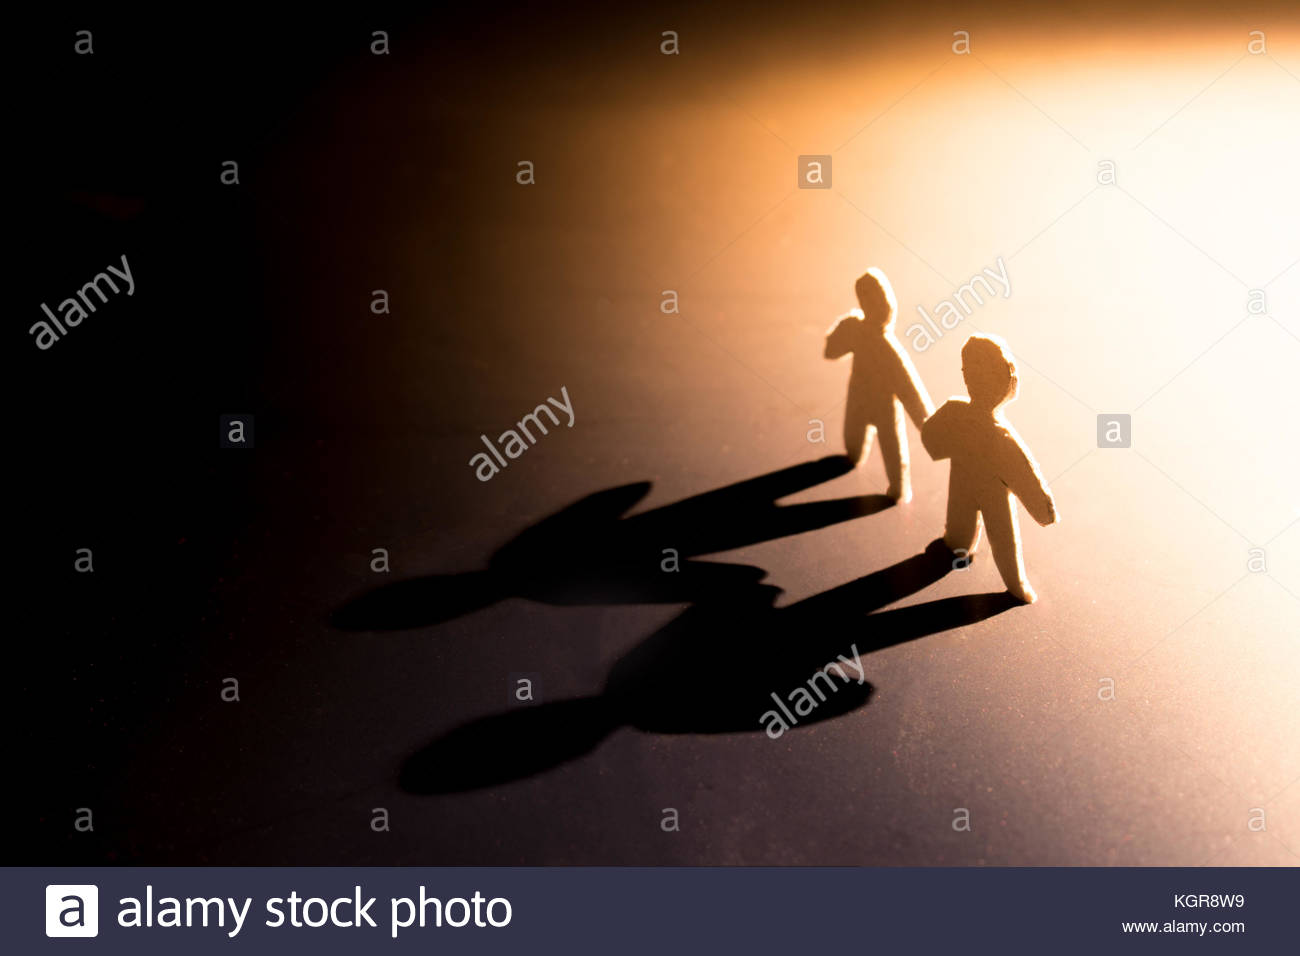 team going forward together for success in concept teamwork ,paper cutting - Stock Image